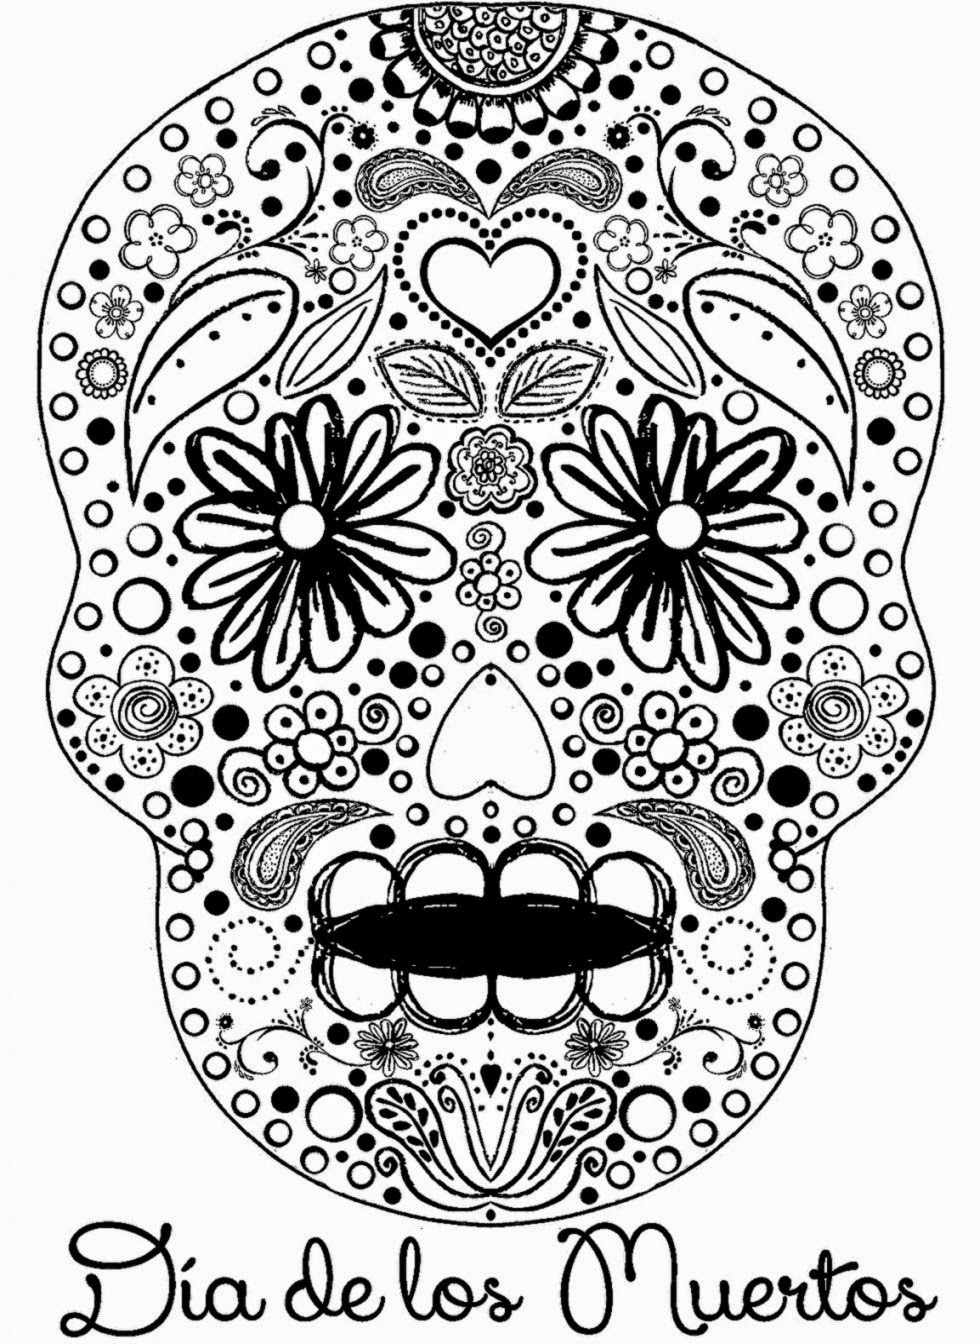 Easy Day Of The Dead Coloring Pages. Day Of The Dead Coloring Pages - Free Printable Day Of The Dead Worksheets